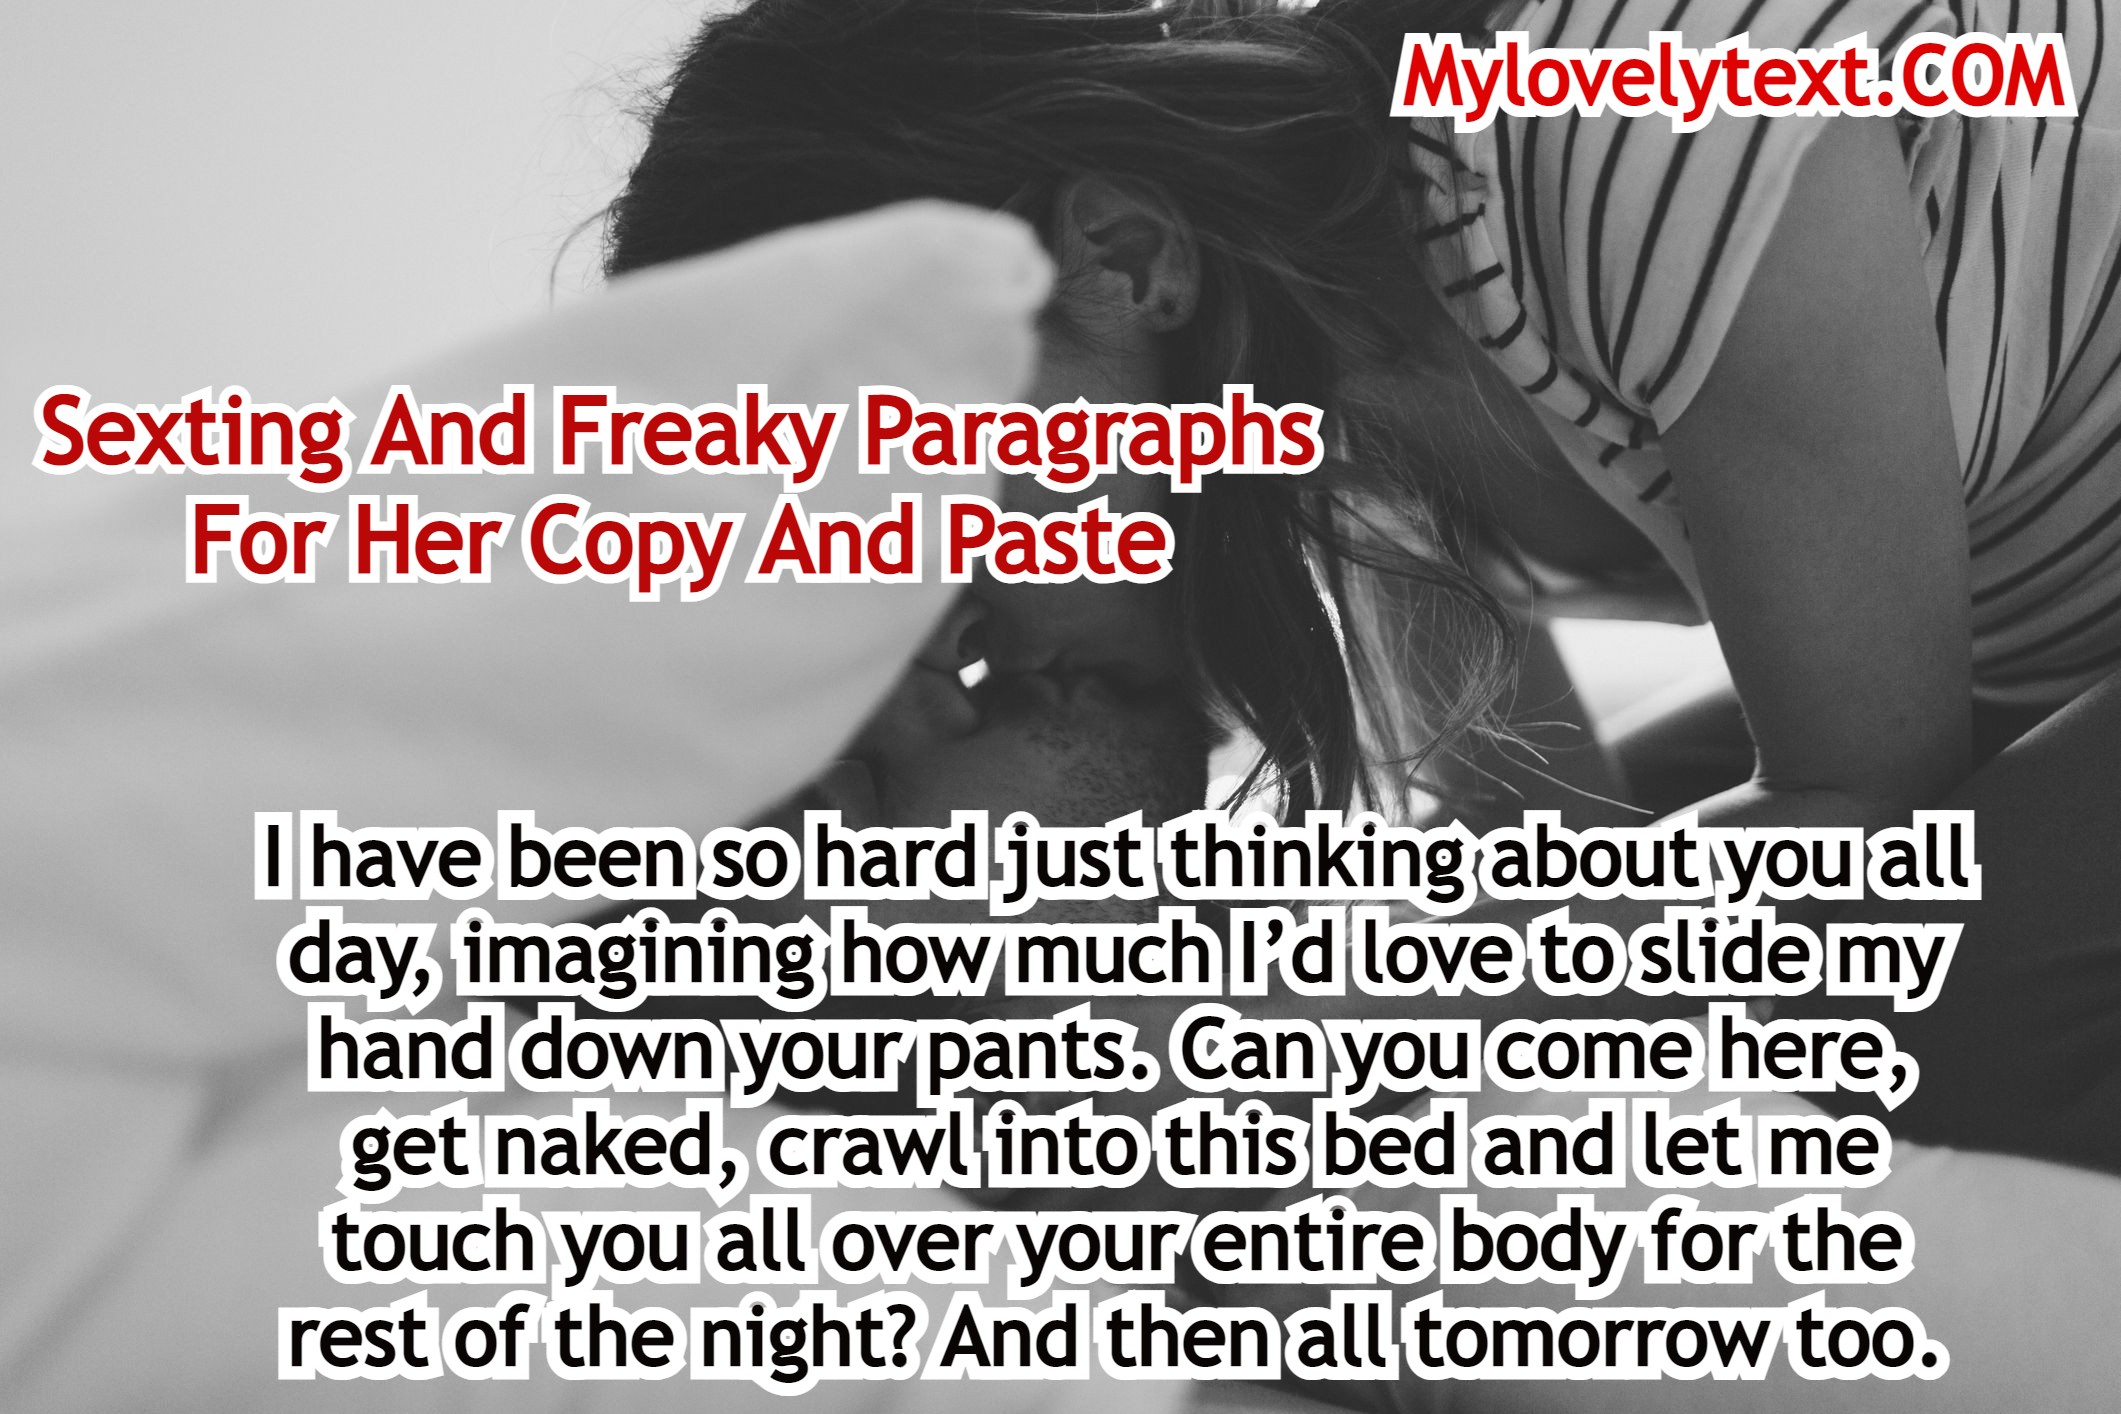 Sexting Dirty And Freaky Paragraphs For Her Copy And Paste